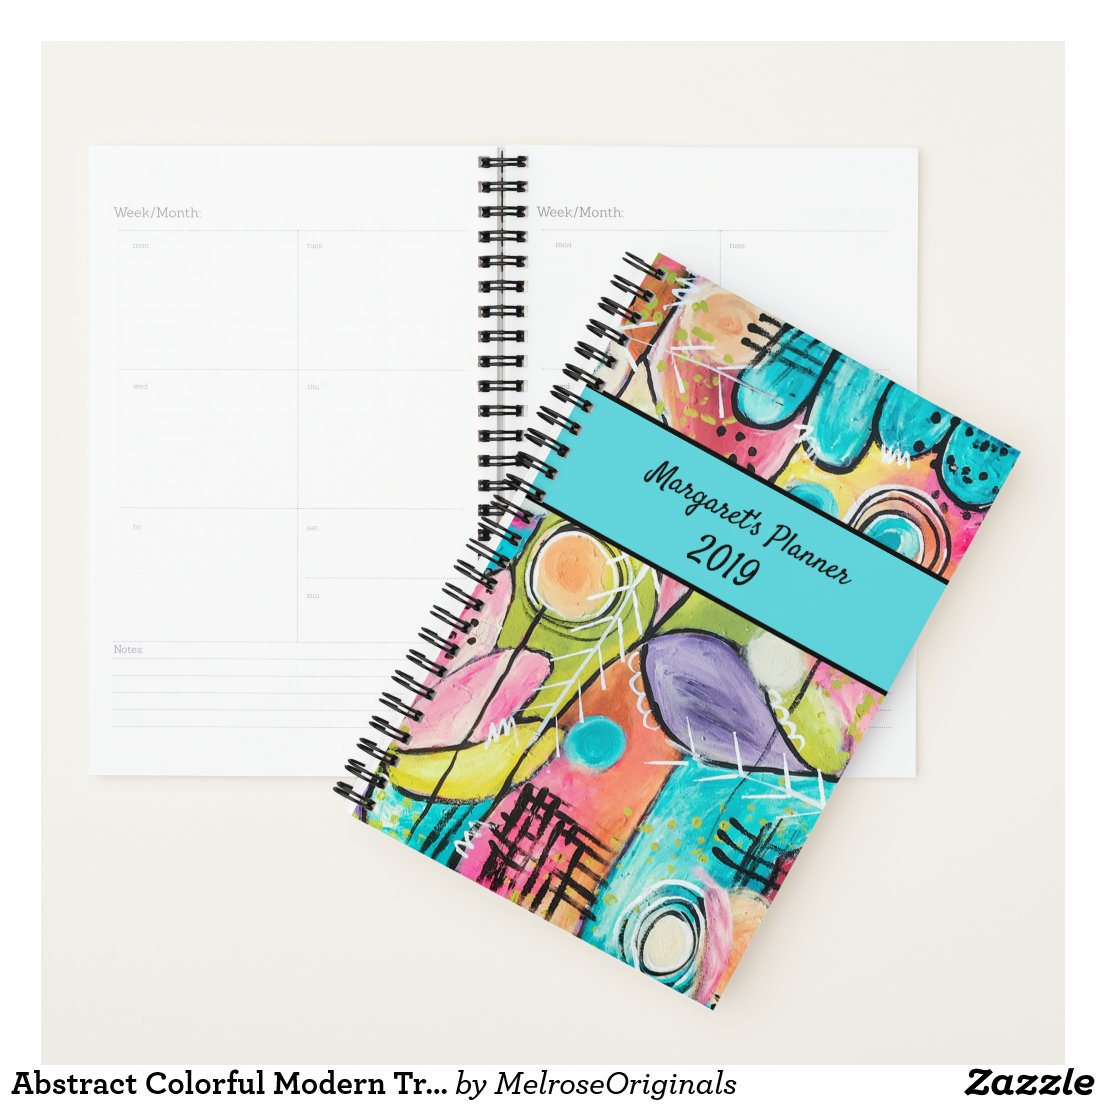 Abstract Colourful Modern Trendy Artistic Planner